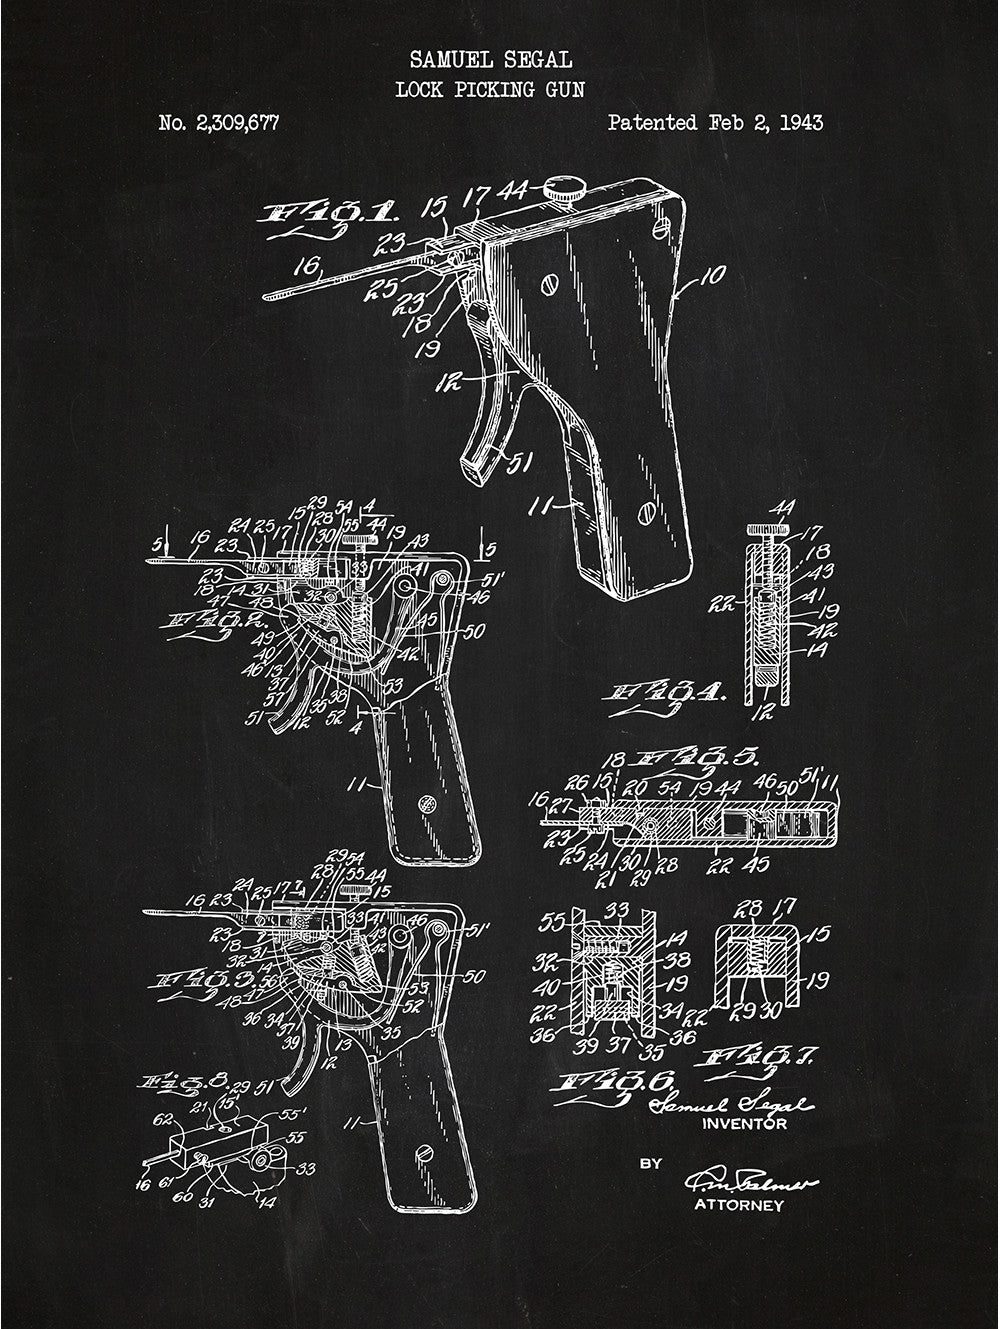 Lock Picking Apparatus - Samuel Segal - 1943